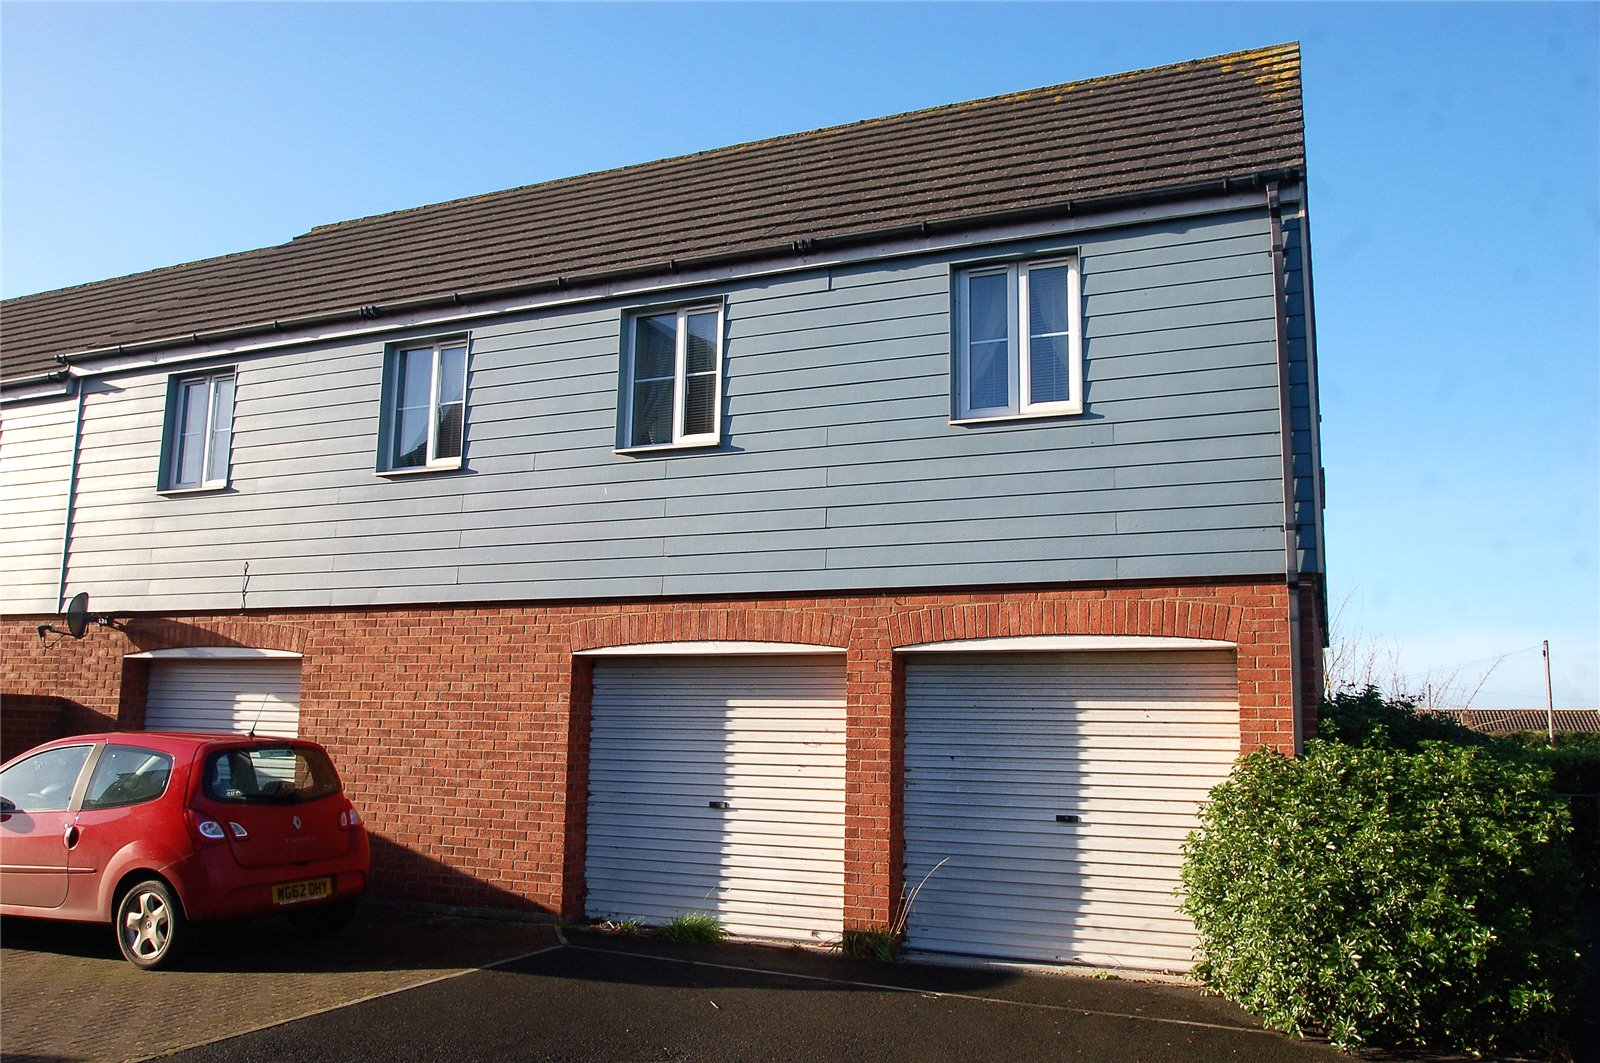 2 Bedrooms Flat for sale in Standish Street Bridgwater Somerset TA6